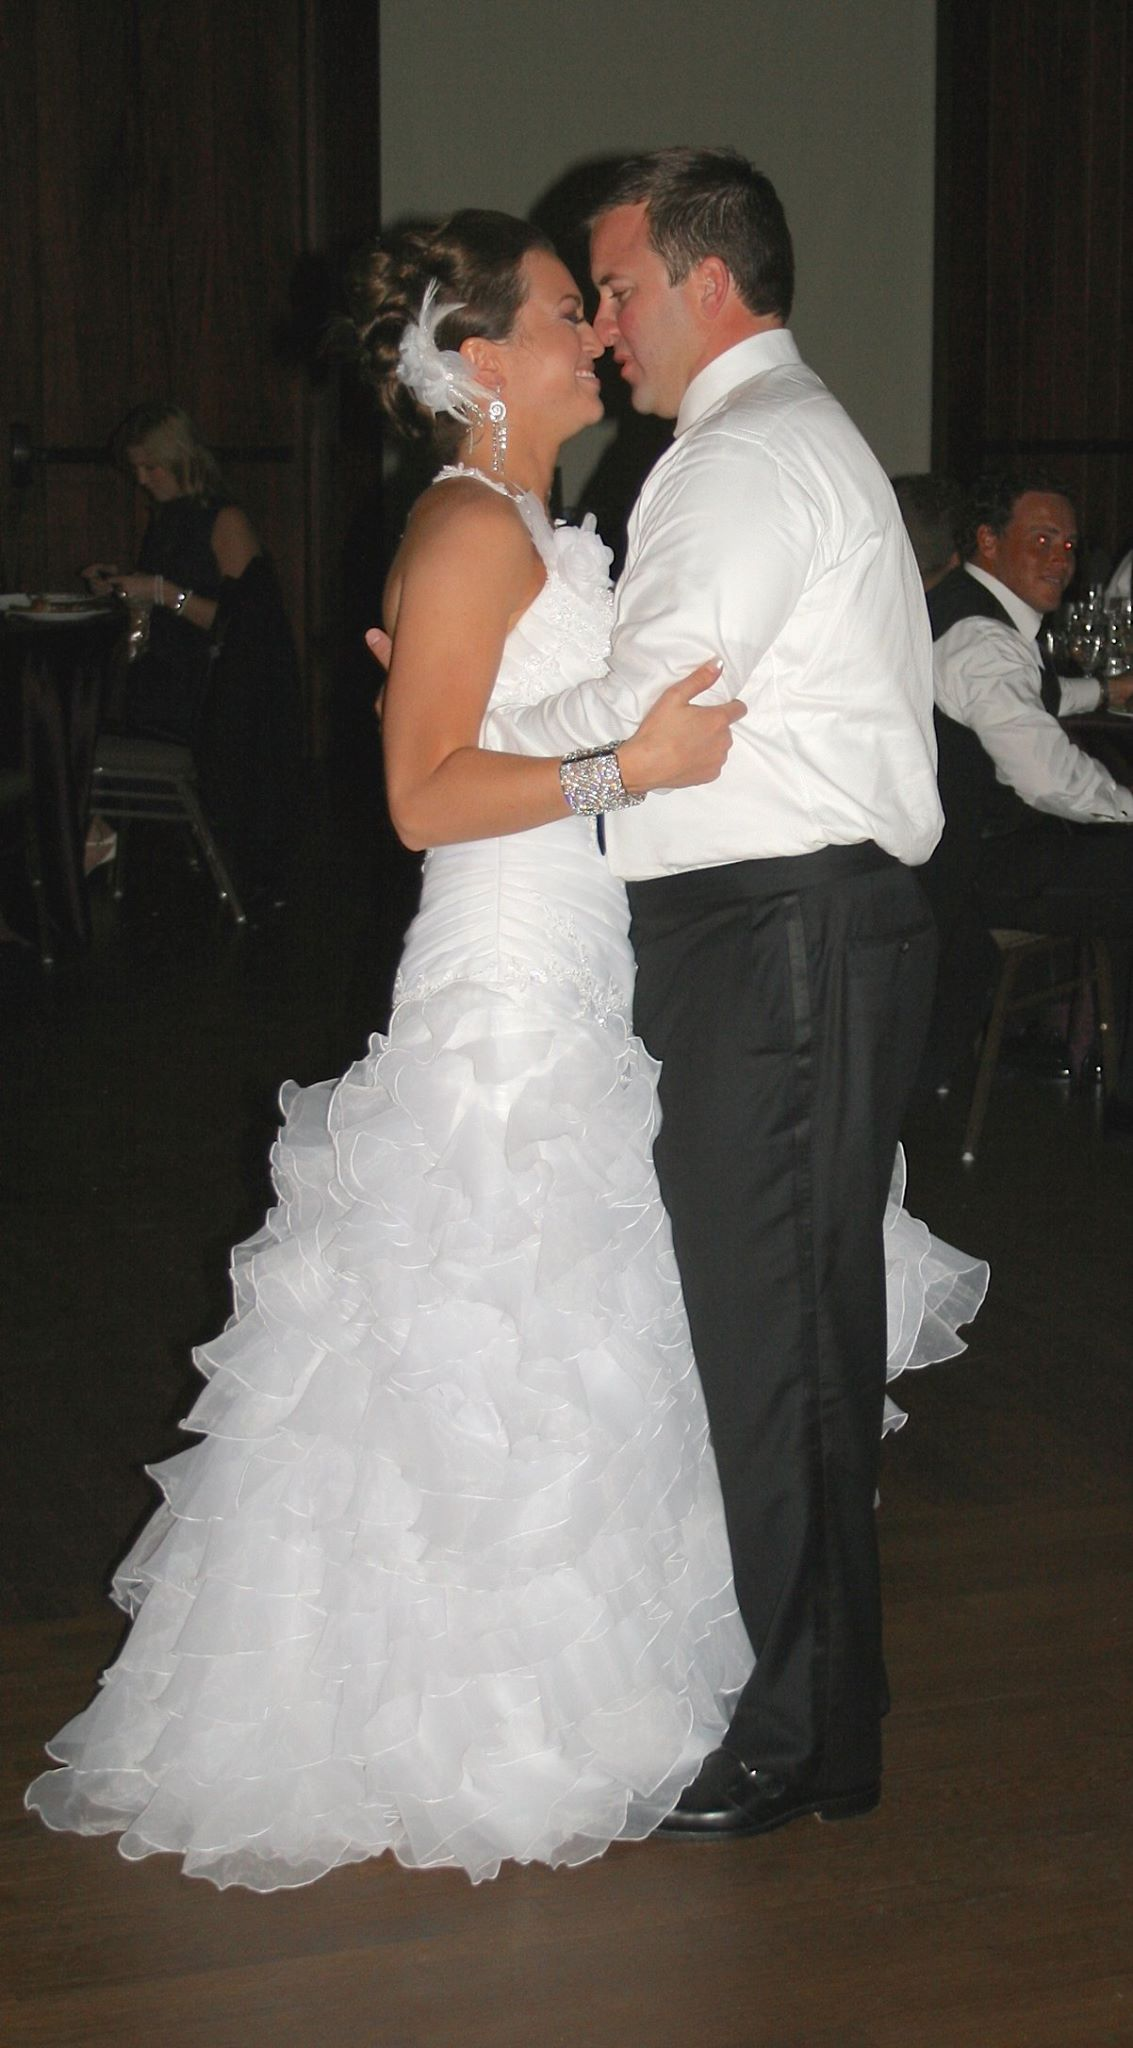 """These Arms of Mine"" by Otis Redding was Erin & Rich's first dance."